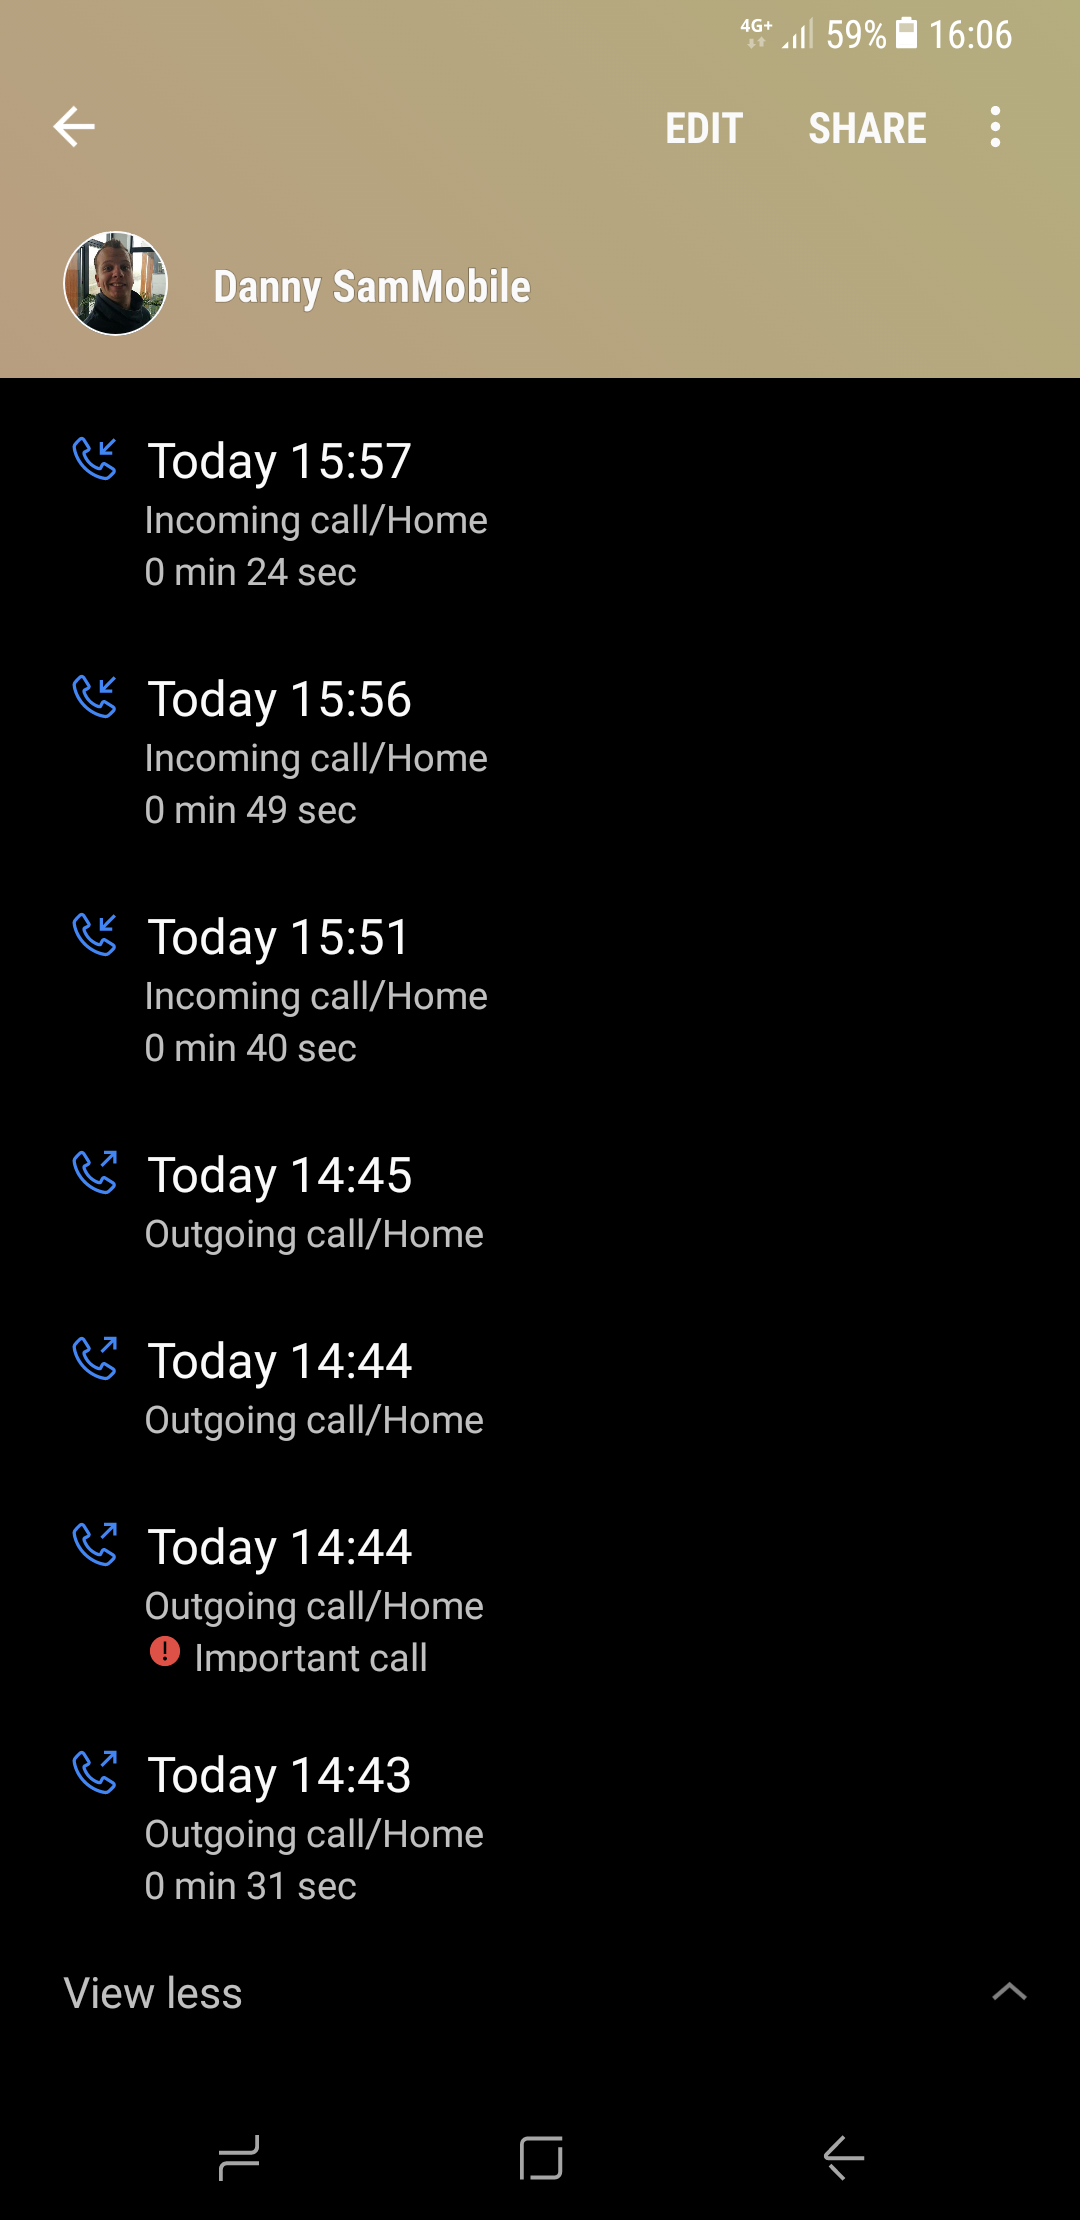 Galaxy S8 Tip: Let the callee know that your call is